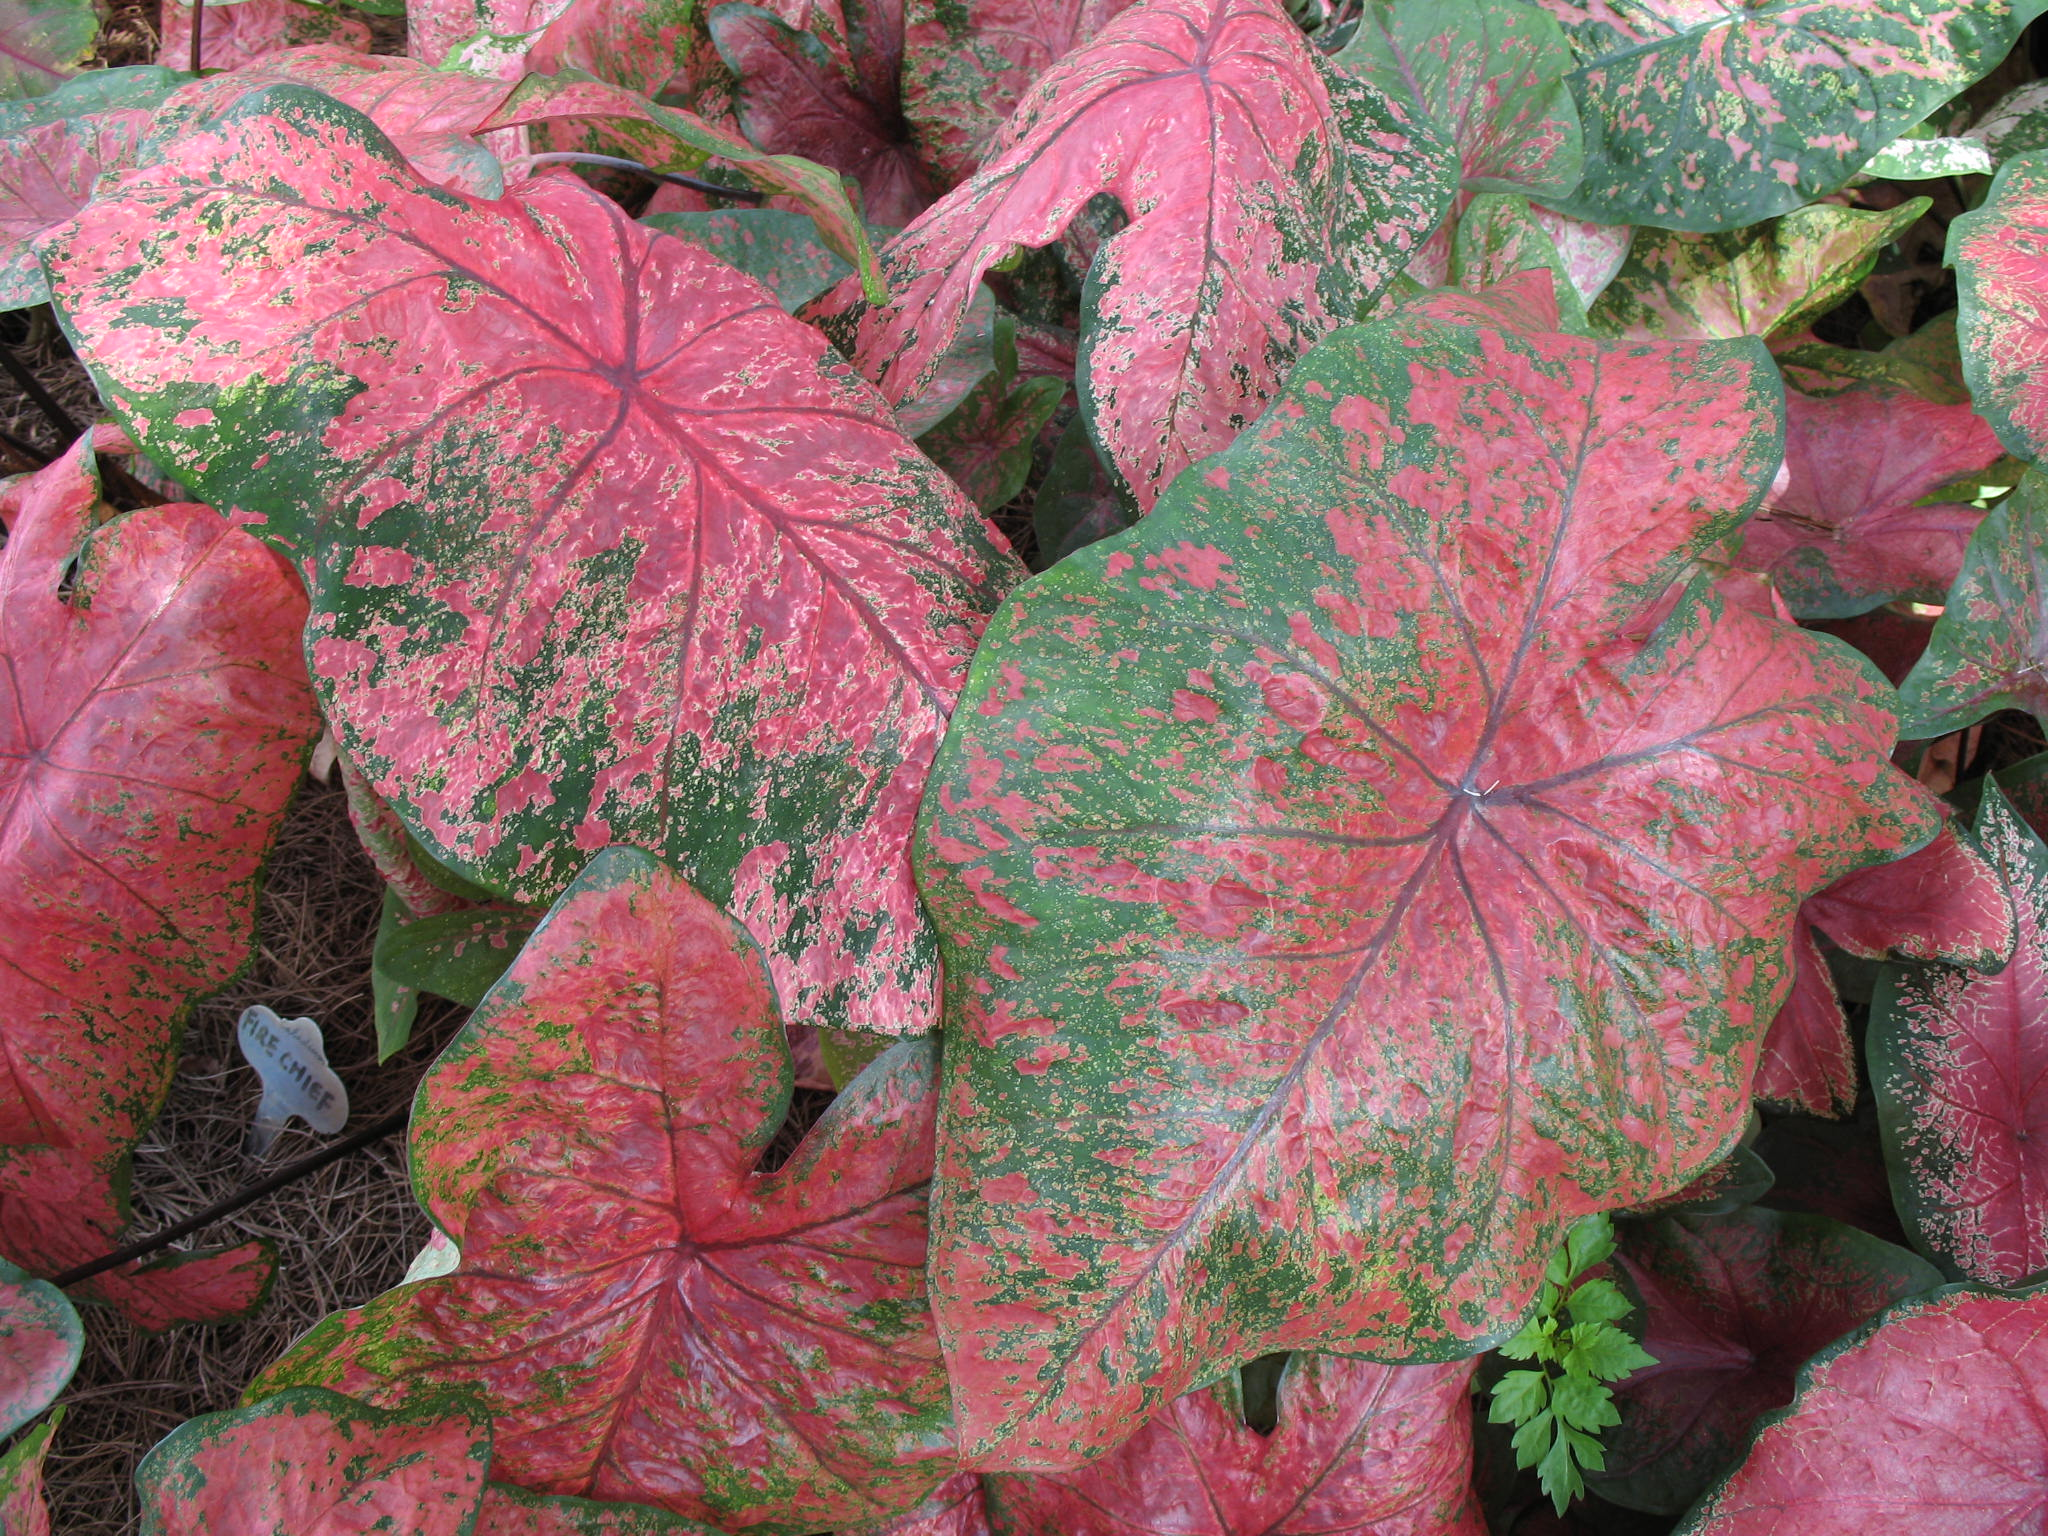 Caladium bicolor 'Fire Chief'  / Caladium bicolor 'Fire Chief'